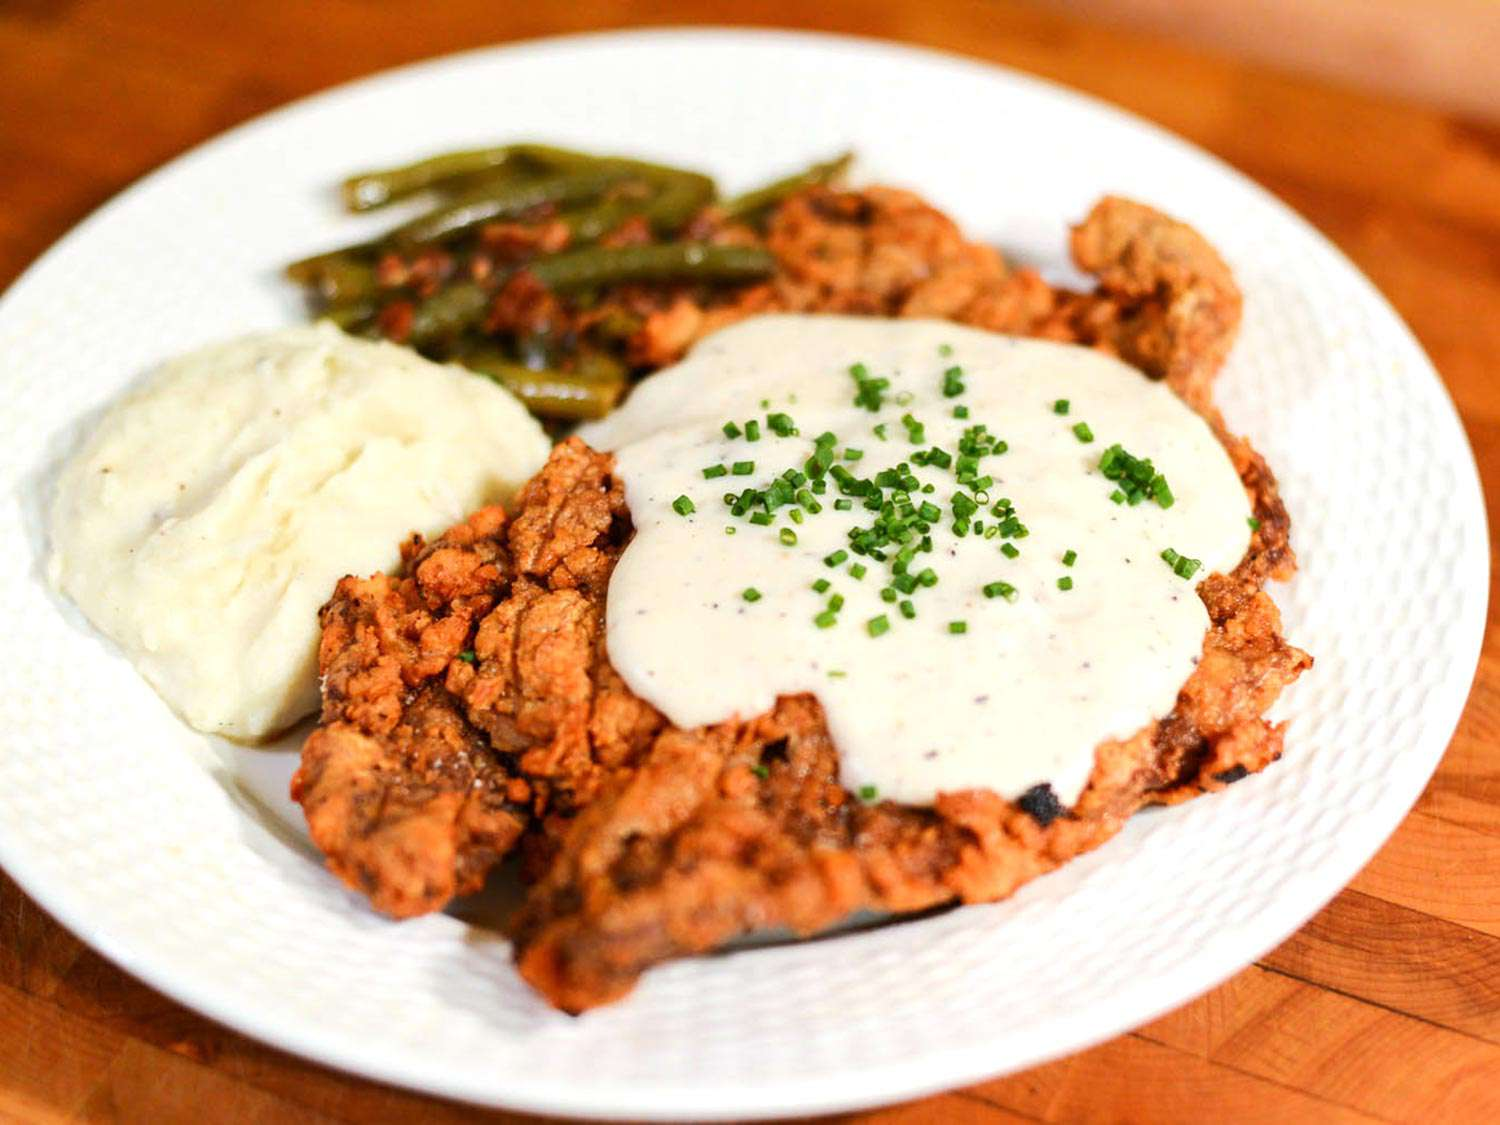 The Best Fried Chicken on the Planet An Opinionated World Tour